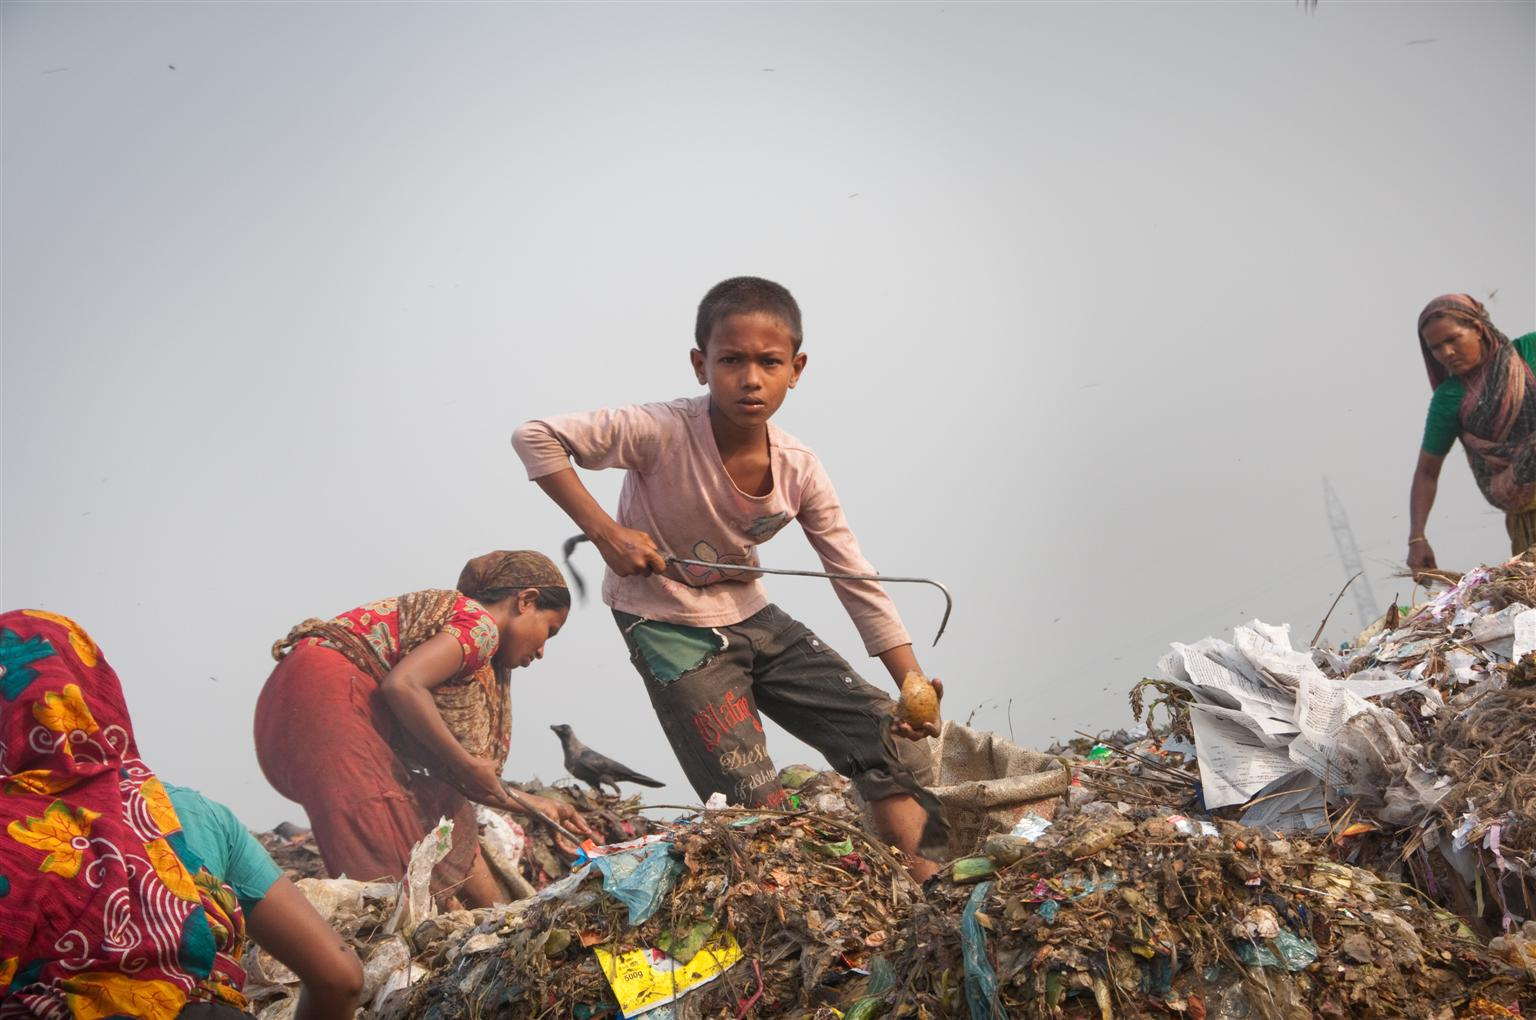 The latest global estimates indicate that the number of children in child labour has risen to 160 million worldwide – an increase of 8.4 million chi